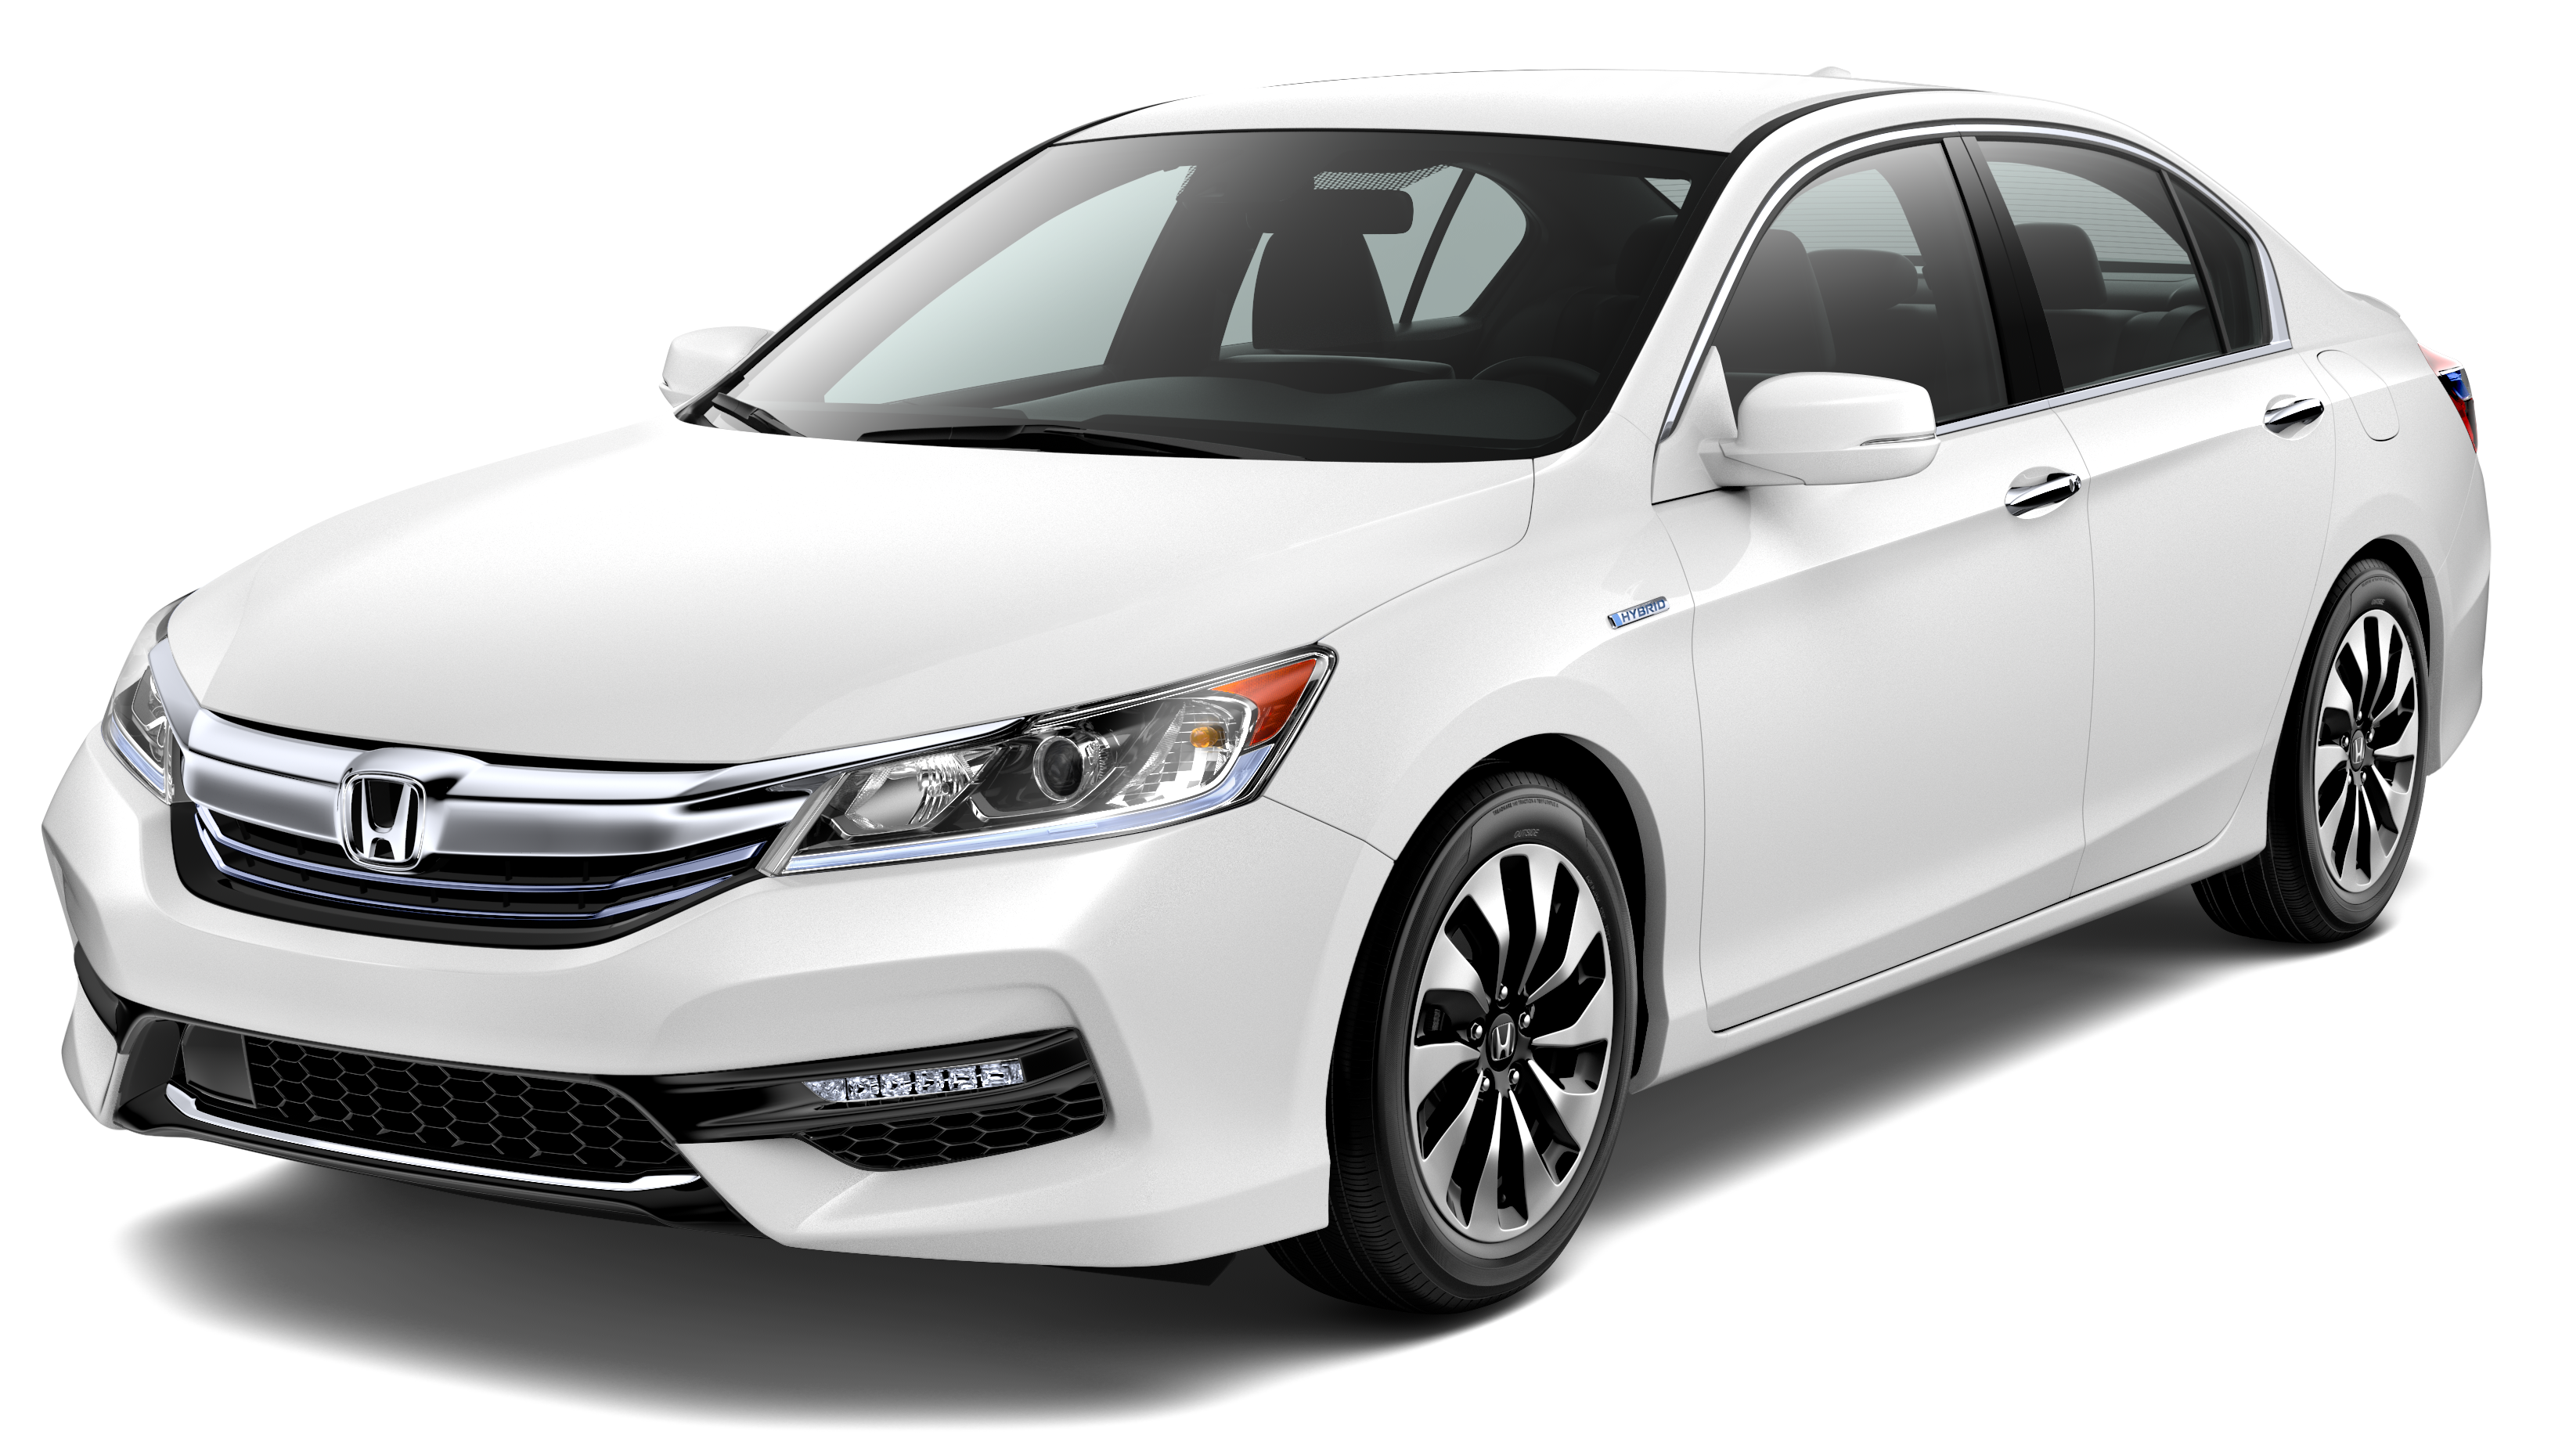 New 2017 honda accord hybrid sedans in huntington ny for Honda accord base model